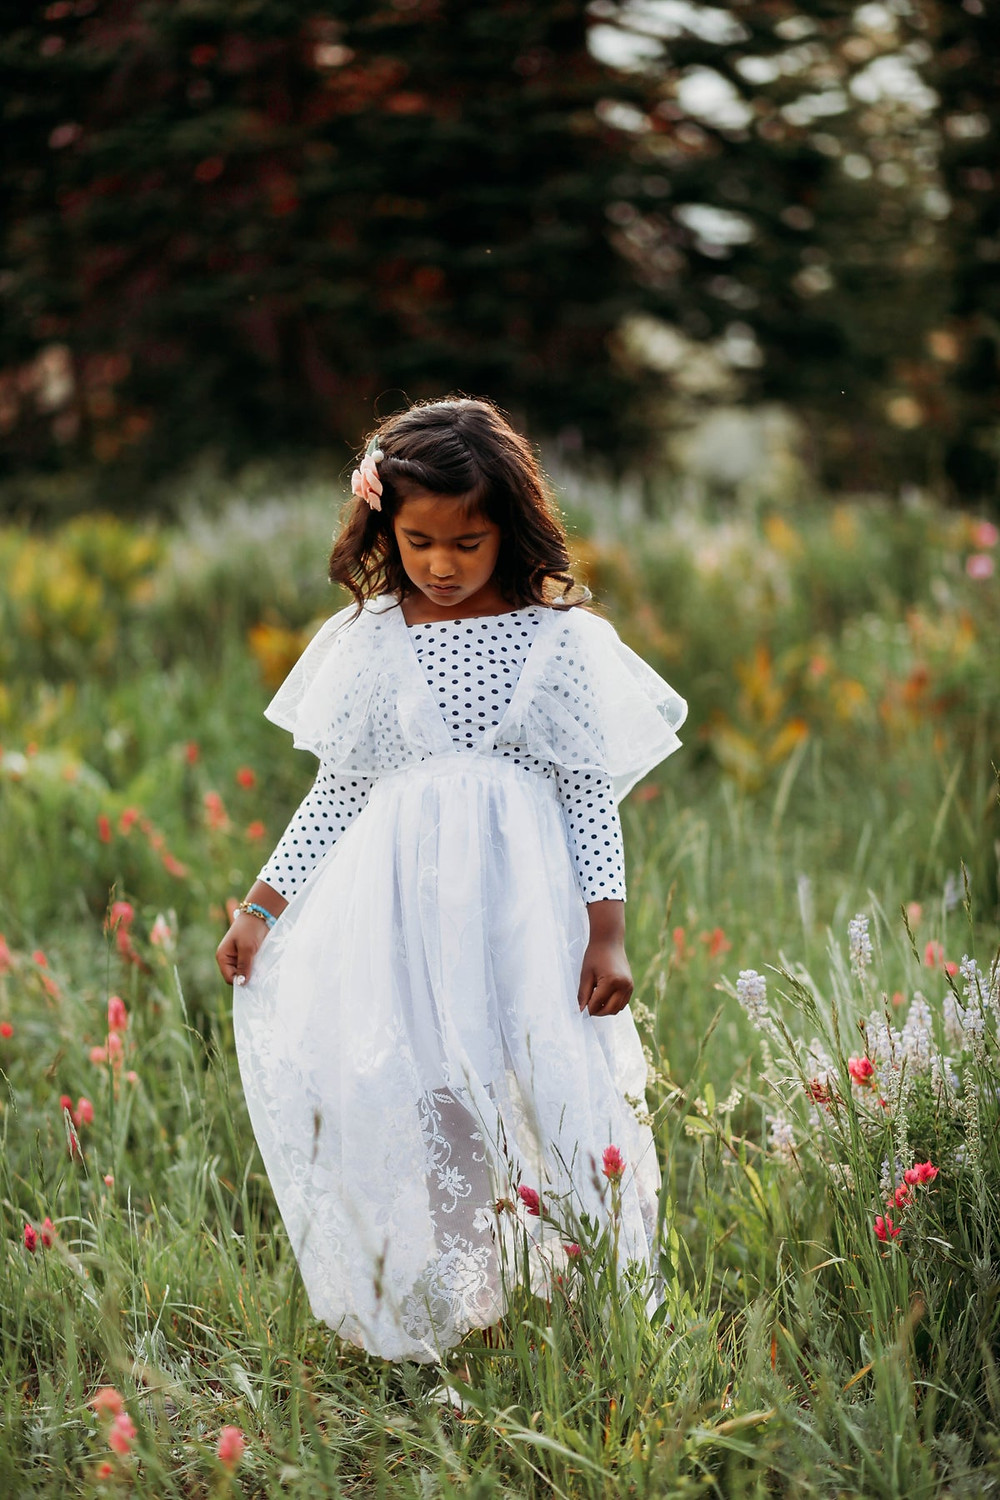 Mella Stitched, Black-owned handmade children's apparel from Canada